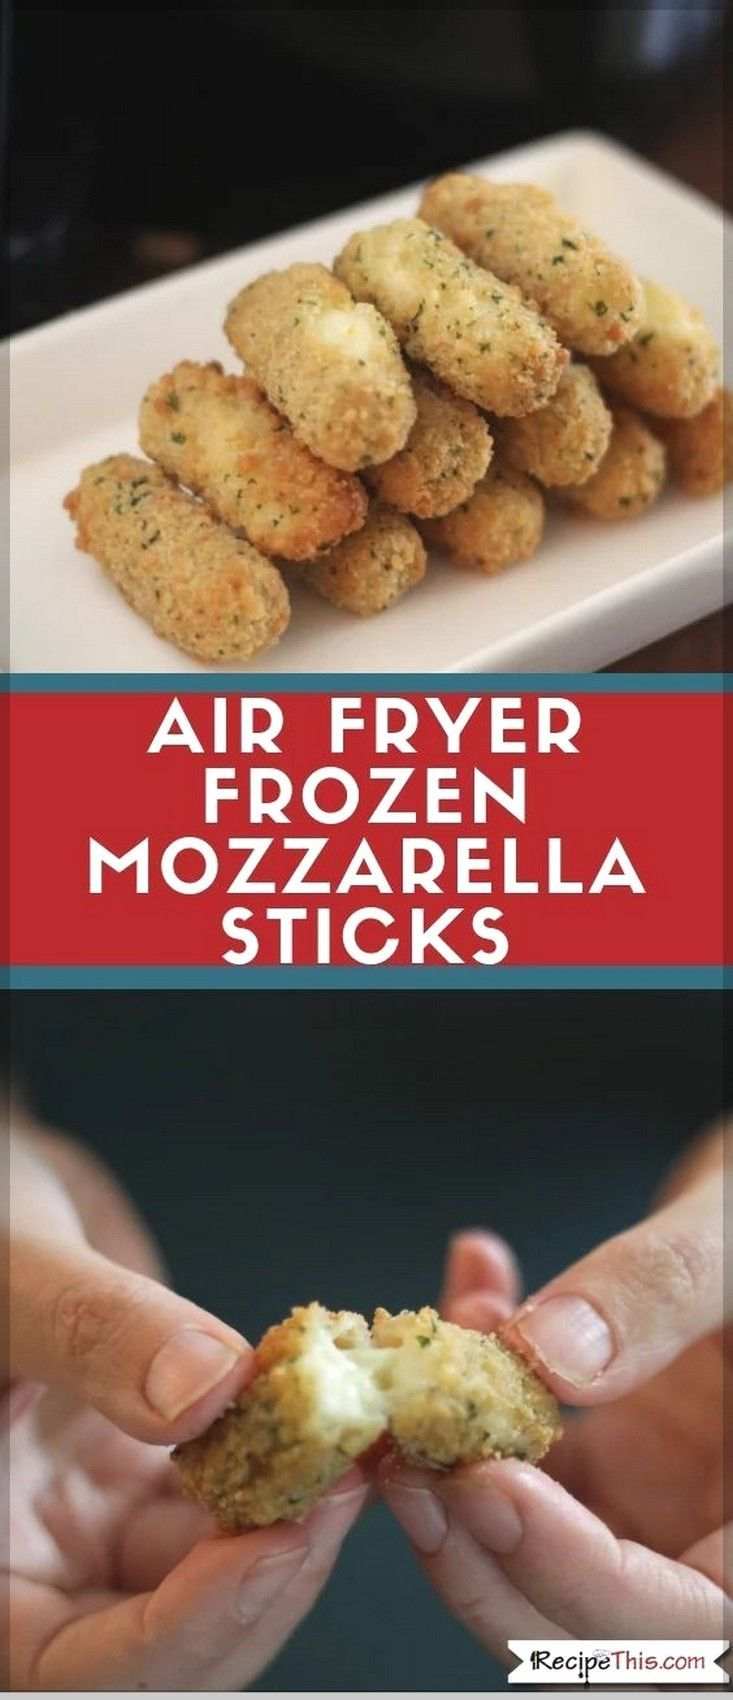 how to make mozzarella sticks in air fryer without freezing